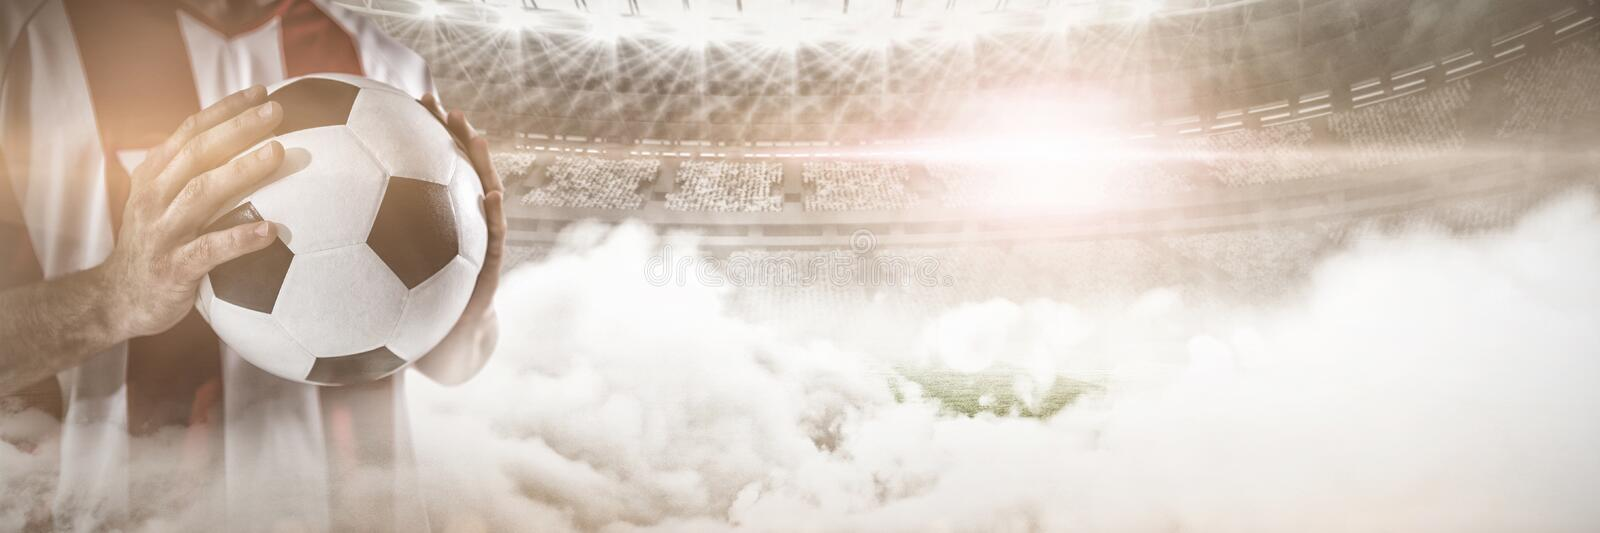 Mid section of player holding football against graphic image of stadium at dusk royalty free stock photography